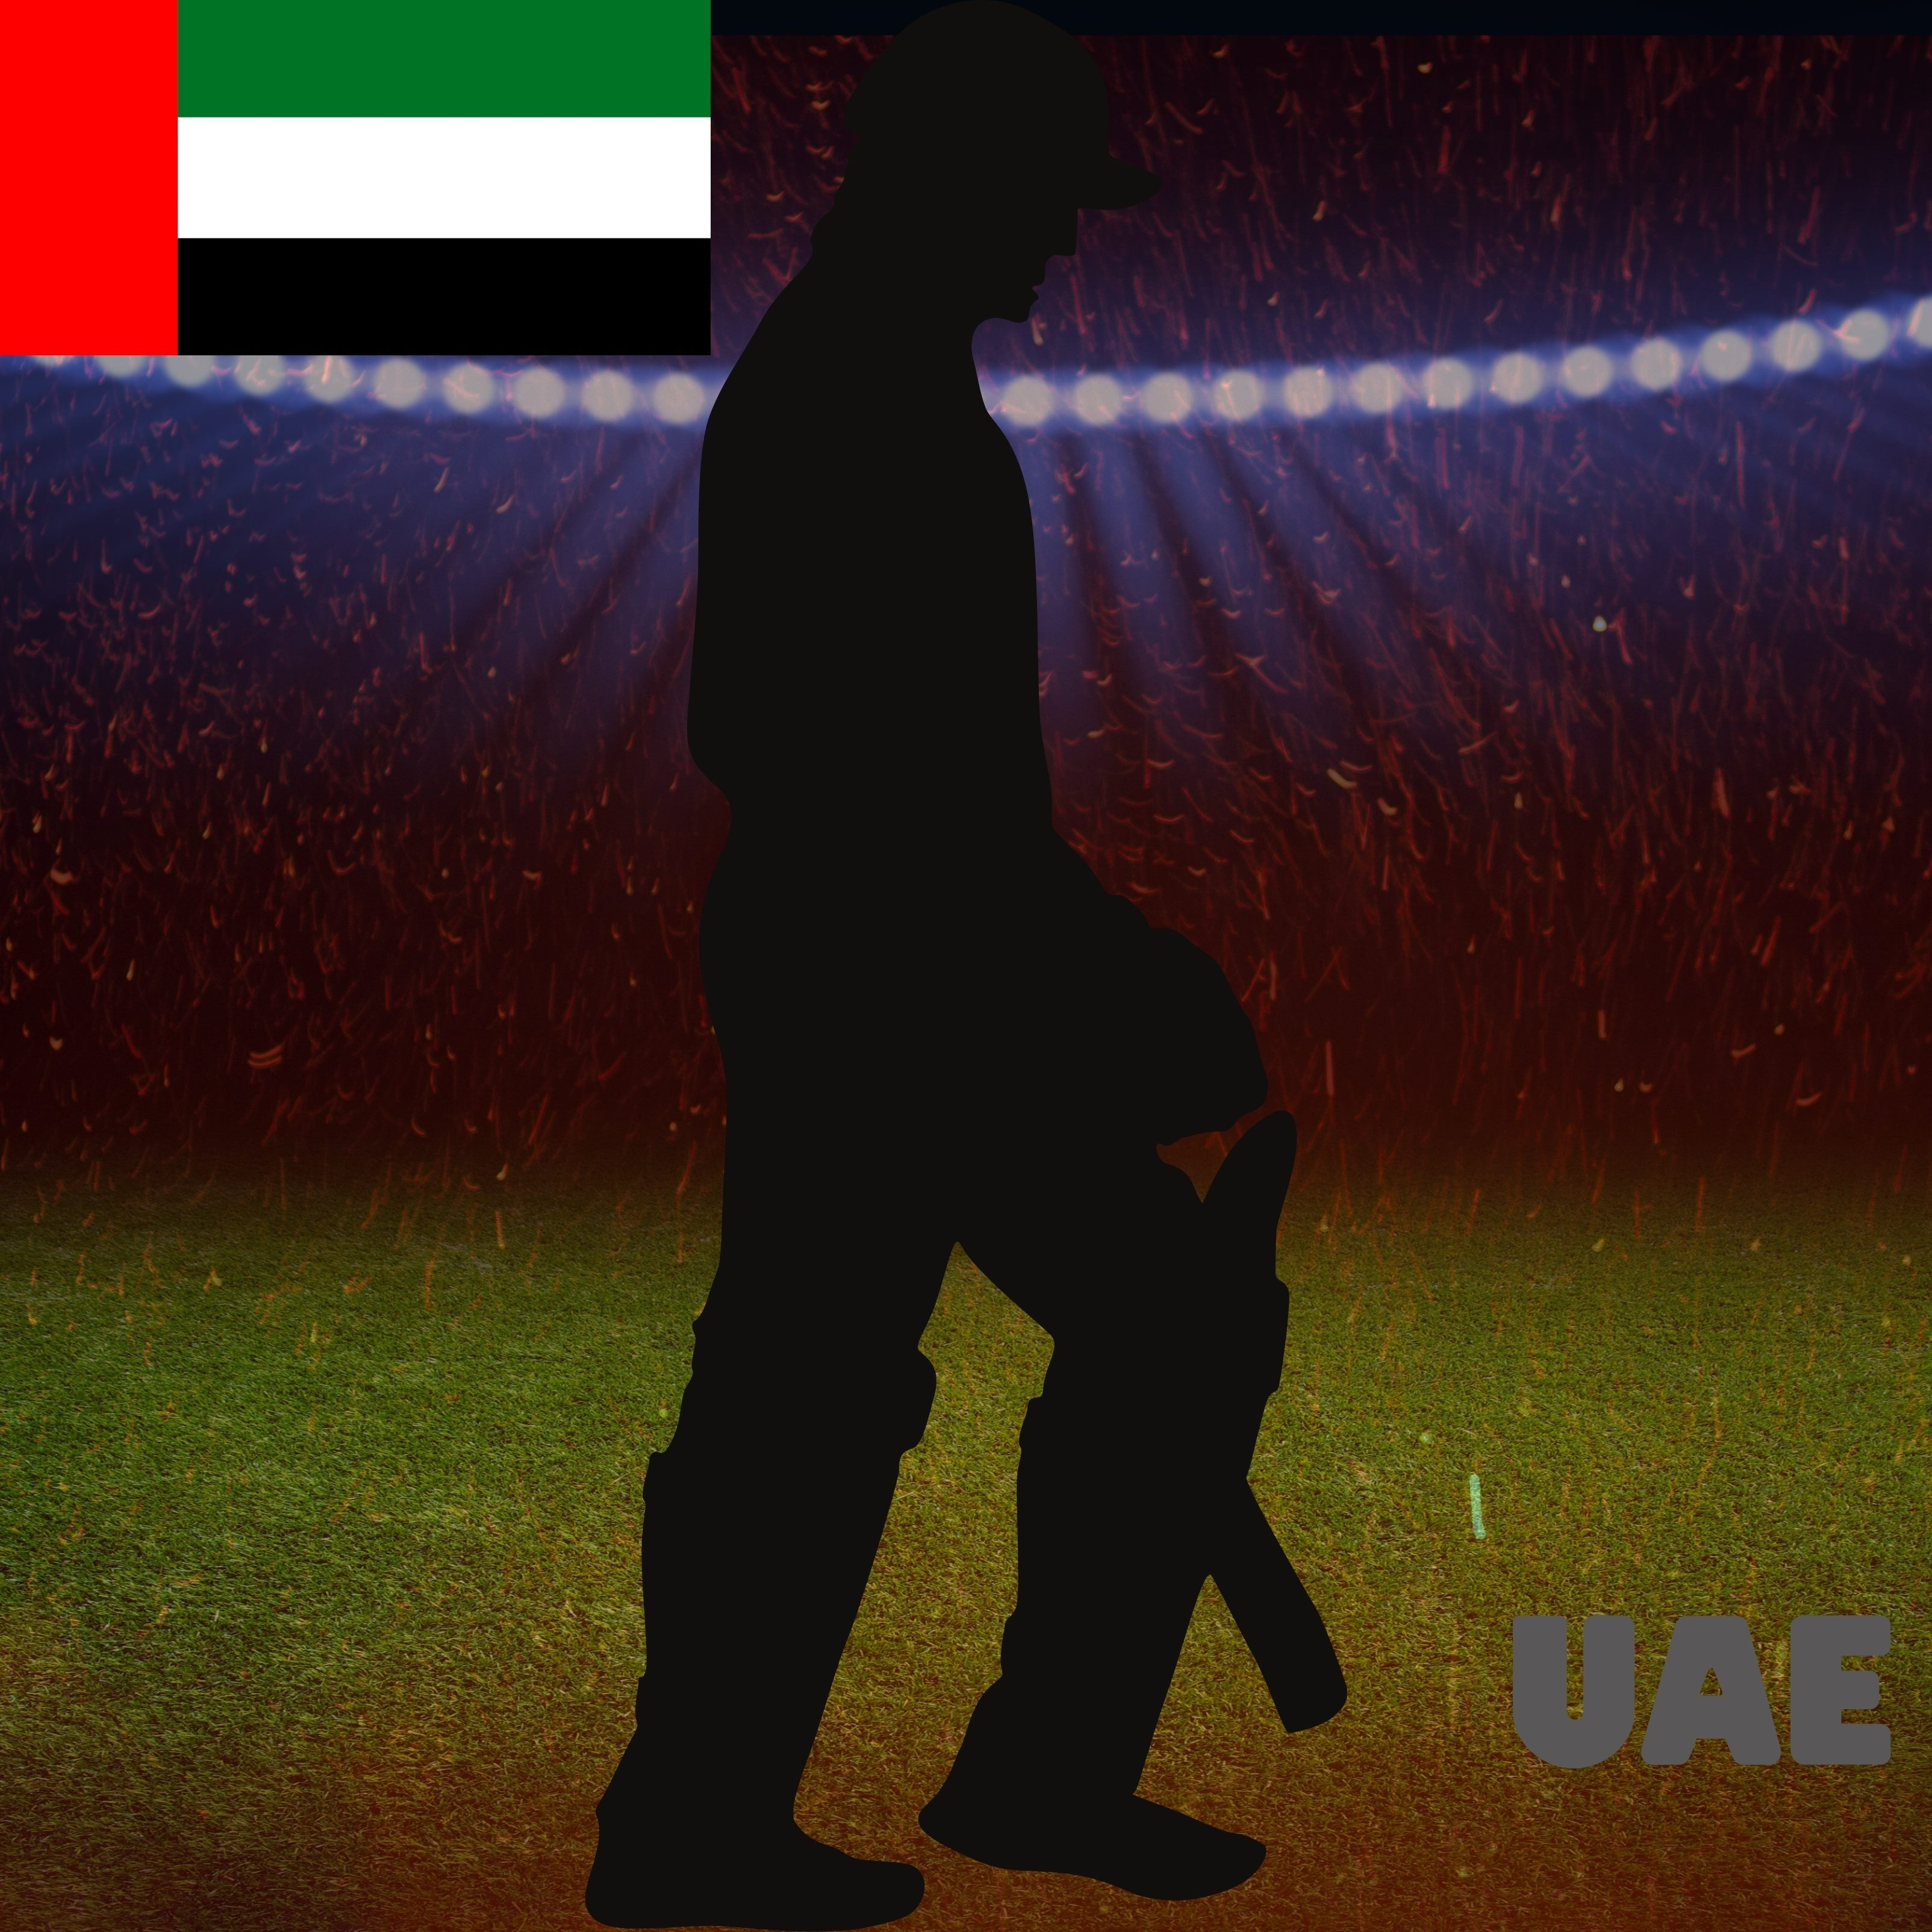 iPad Wallpapers Uae Cricket Stadium iPad Wallpaper 3208x3208 px